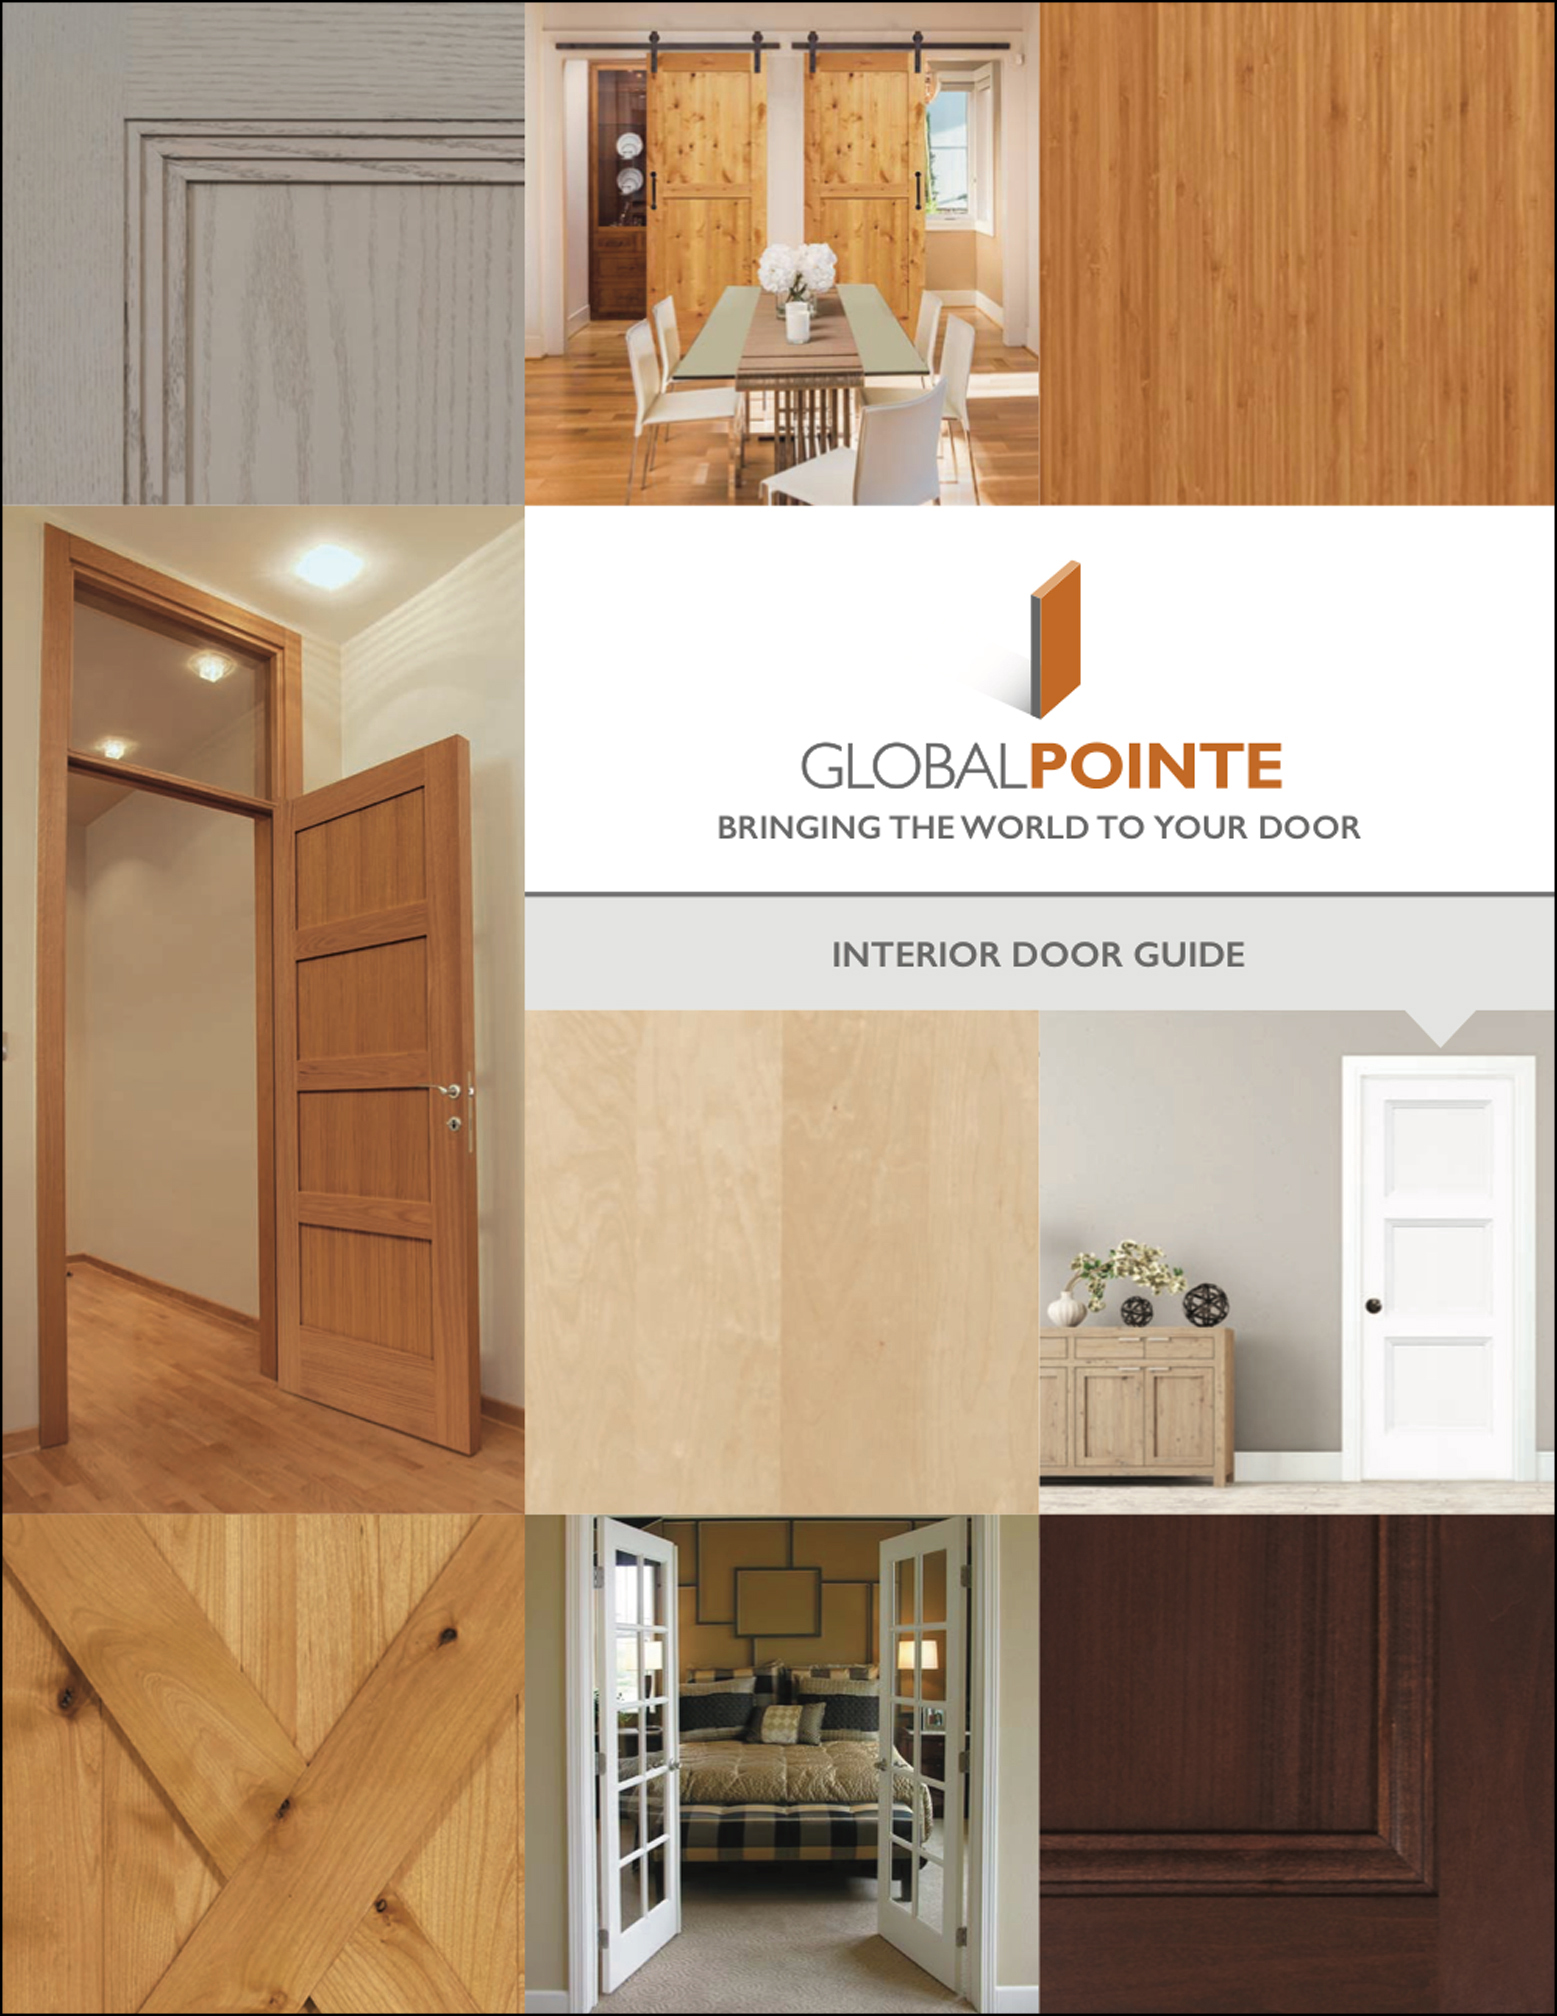 Catalog of Doors & About - Global Pointe